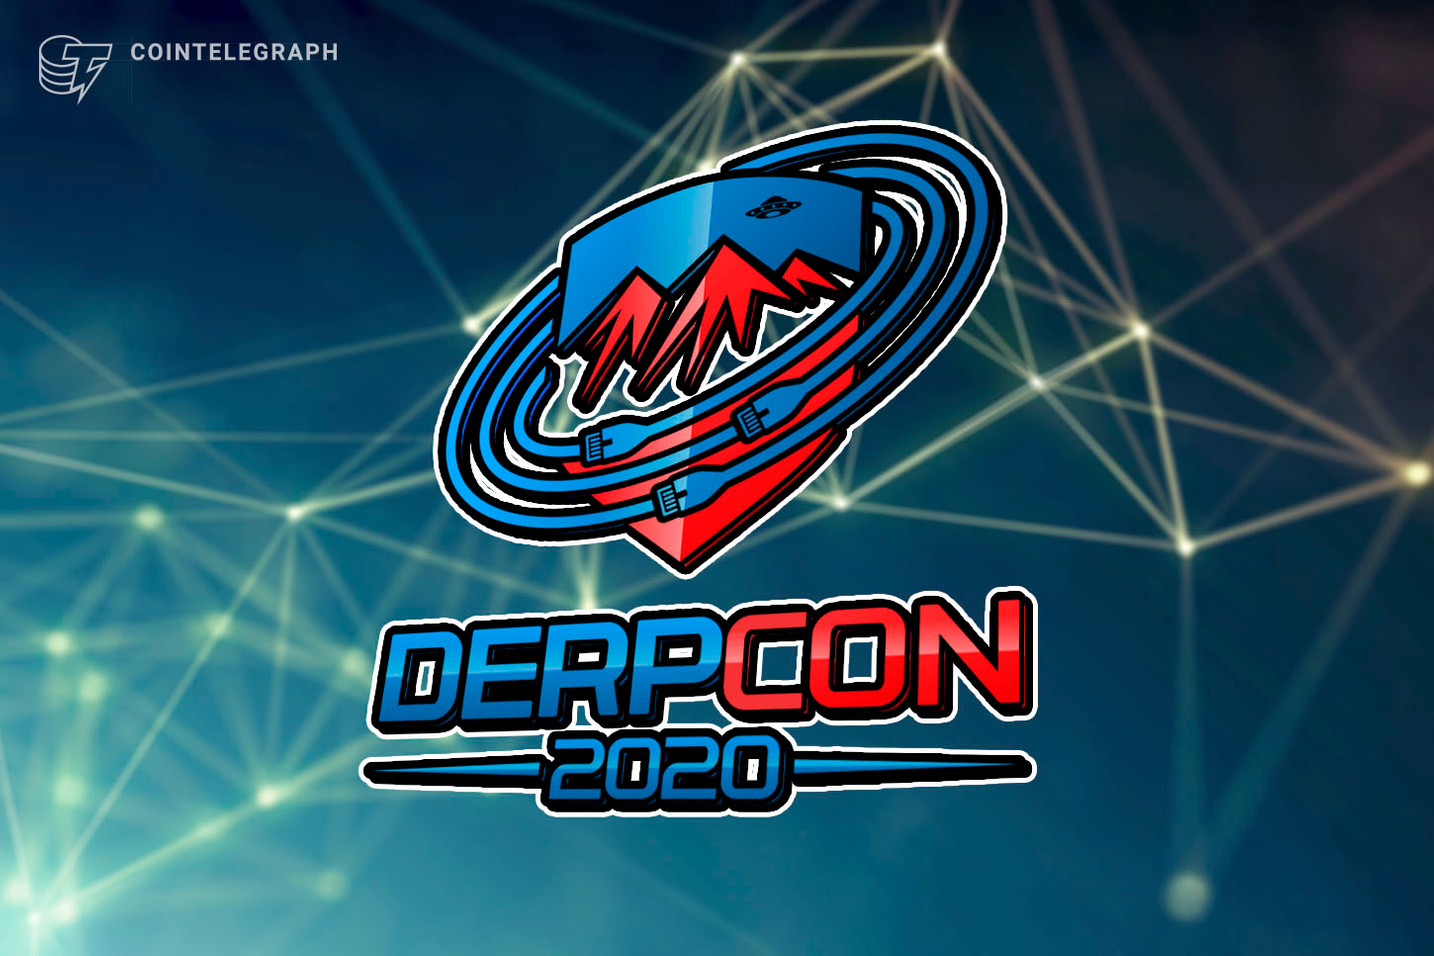 DerpCon 2020 a Free Virtual CyberSecurity Conference for COVID Charity